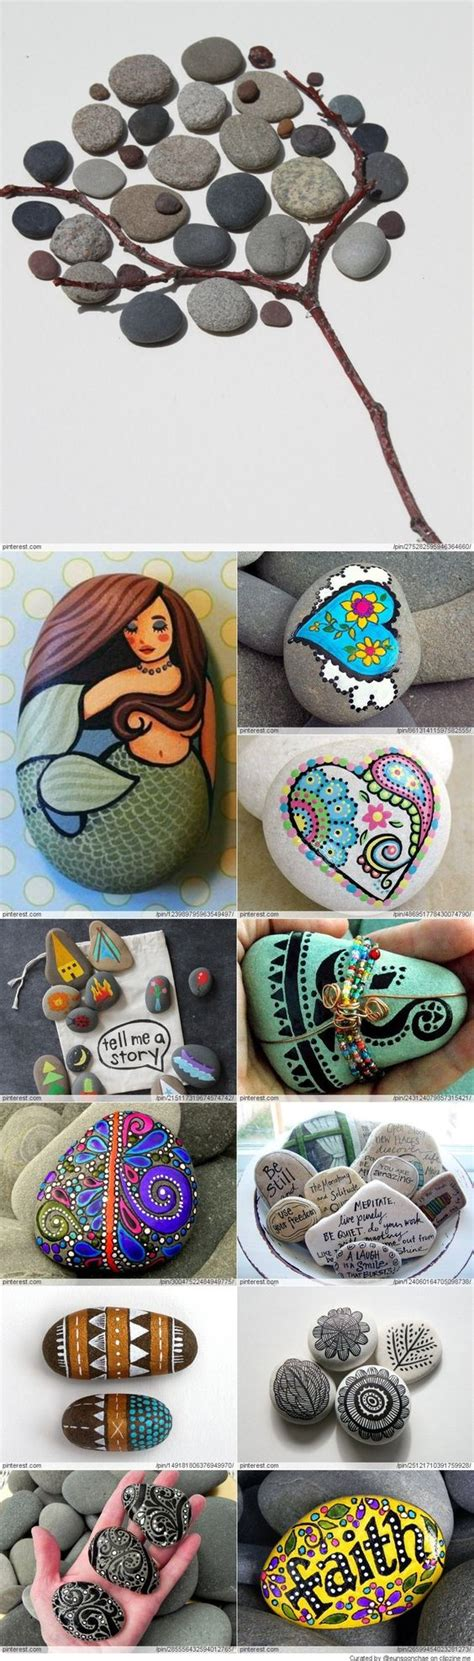 great idea for stone art could paint a rock for a turtle